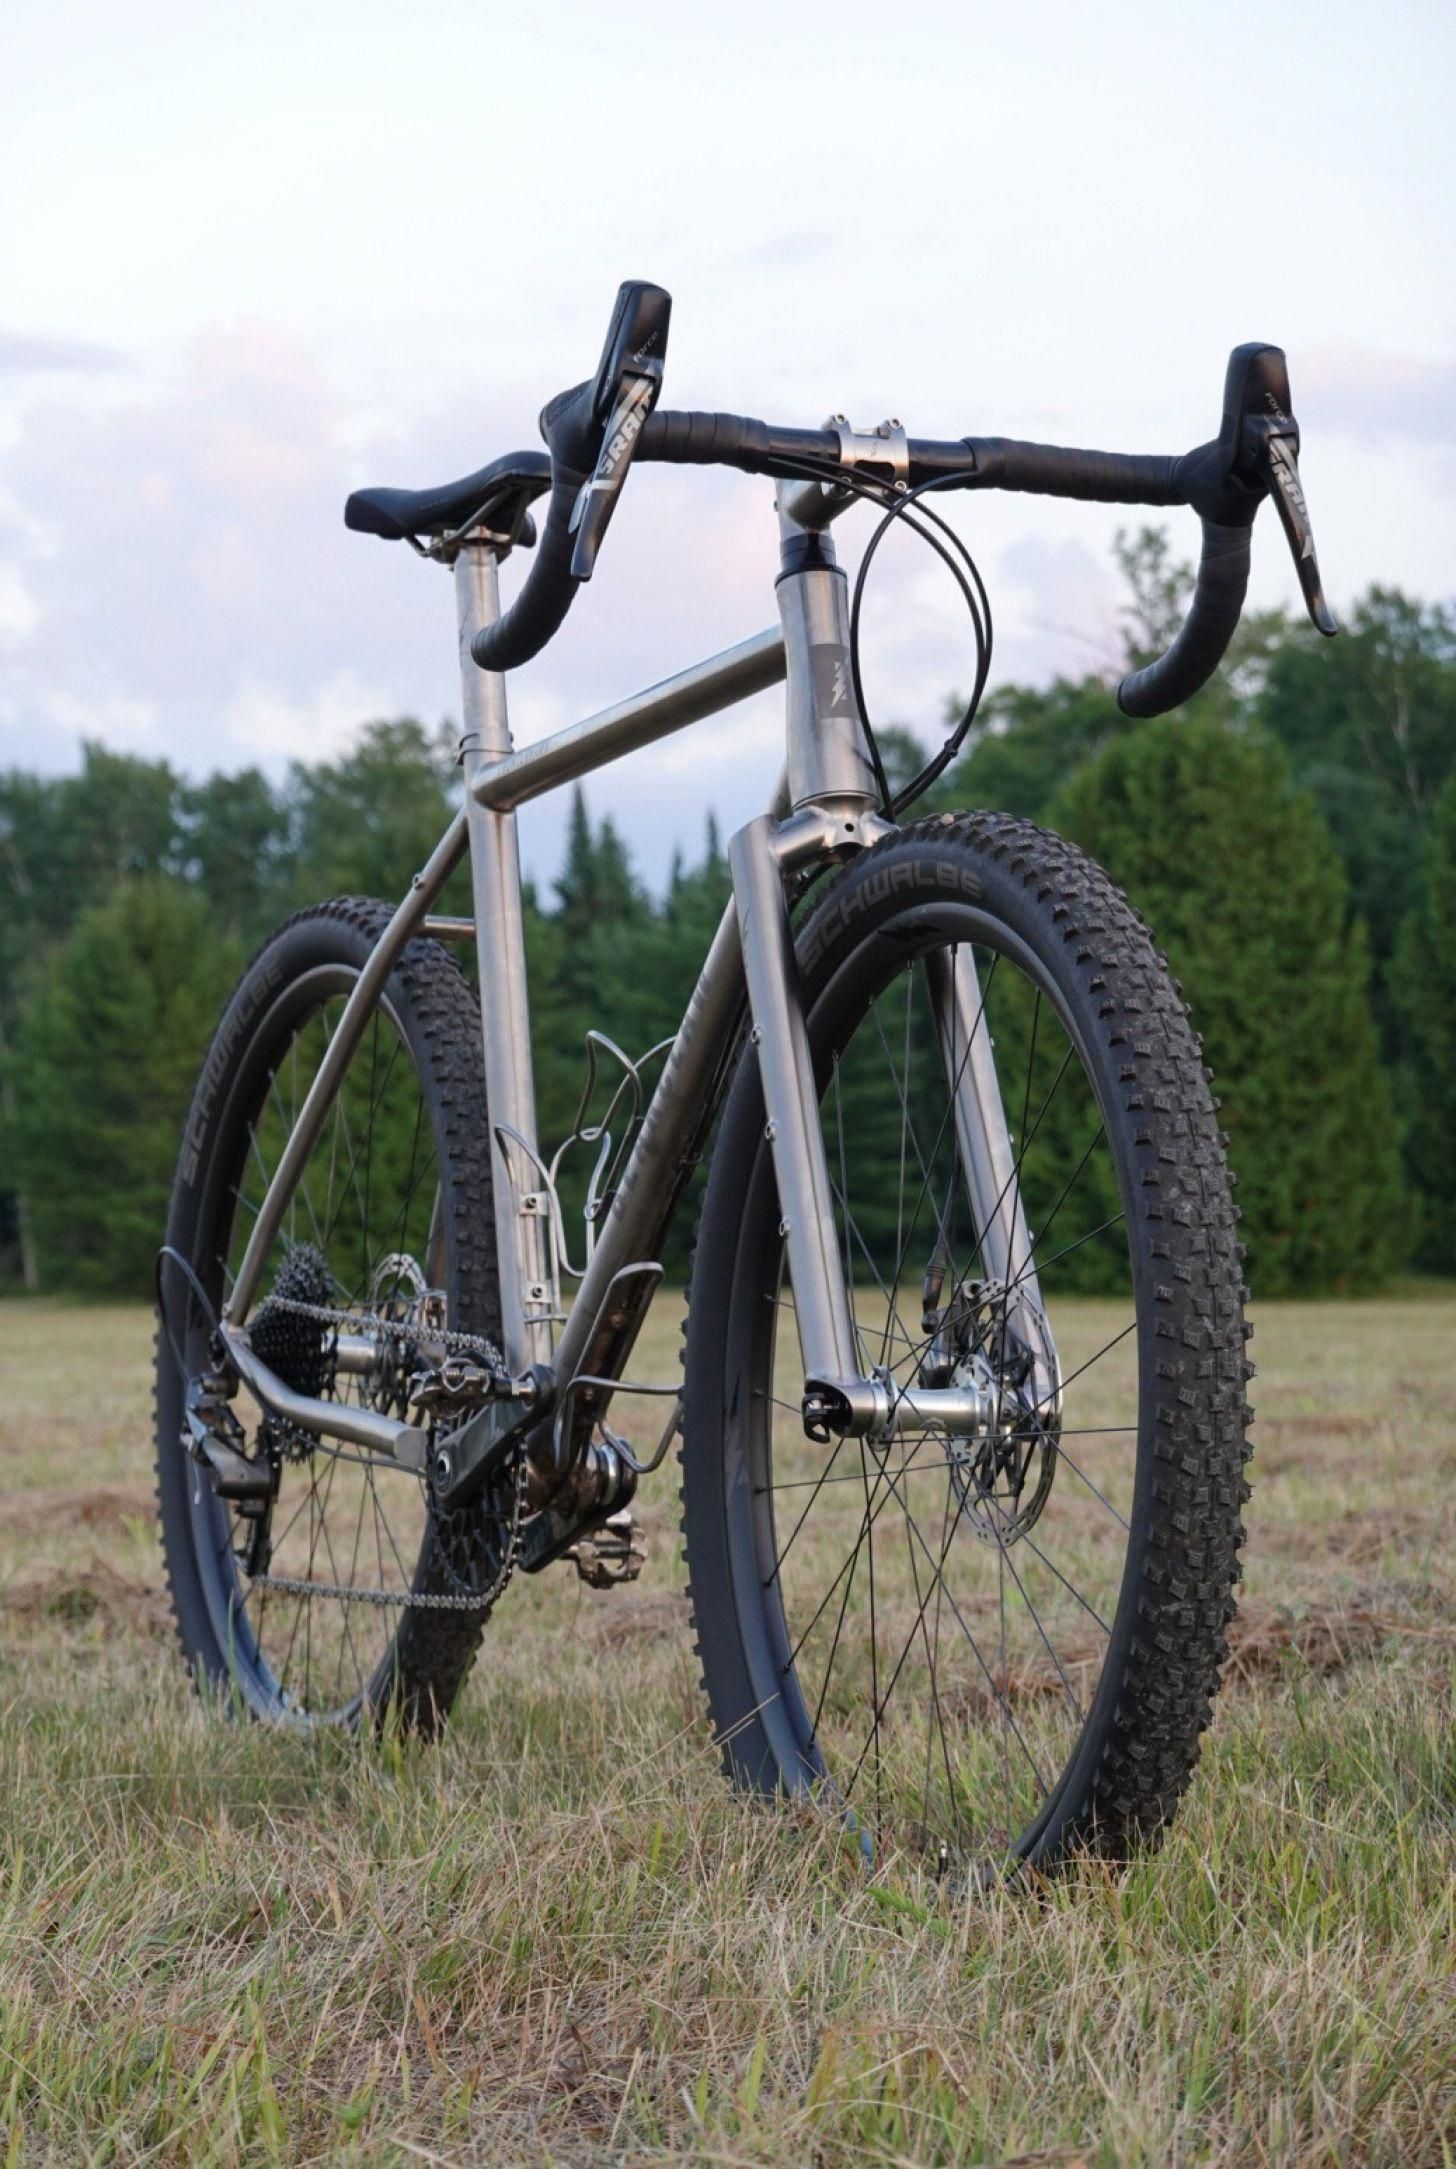 The Best Ways To Purchase A Mountain Bike In 2020 Gravel Bike